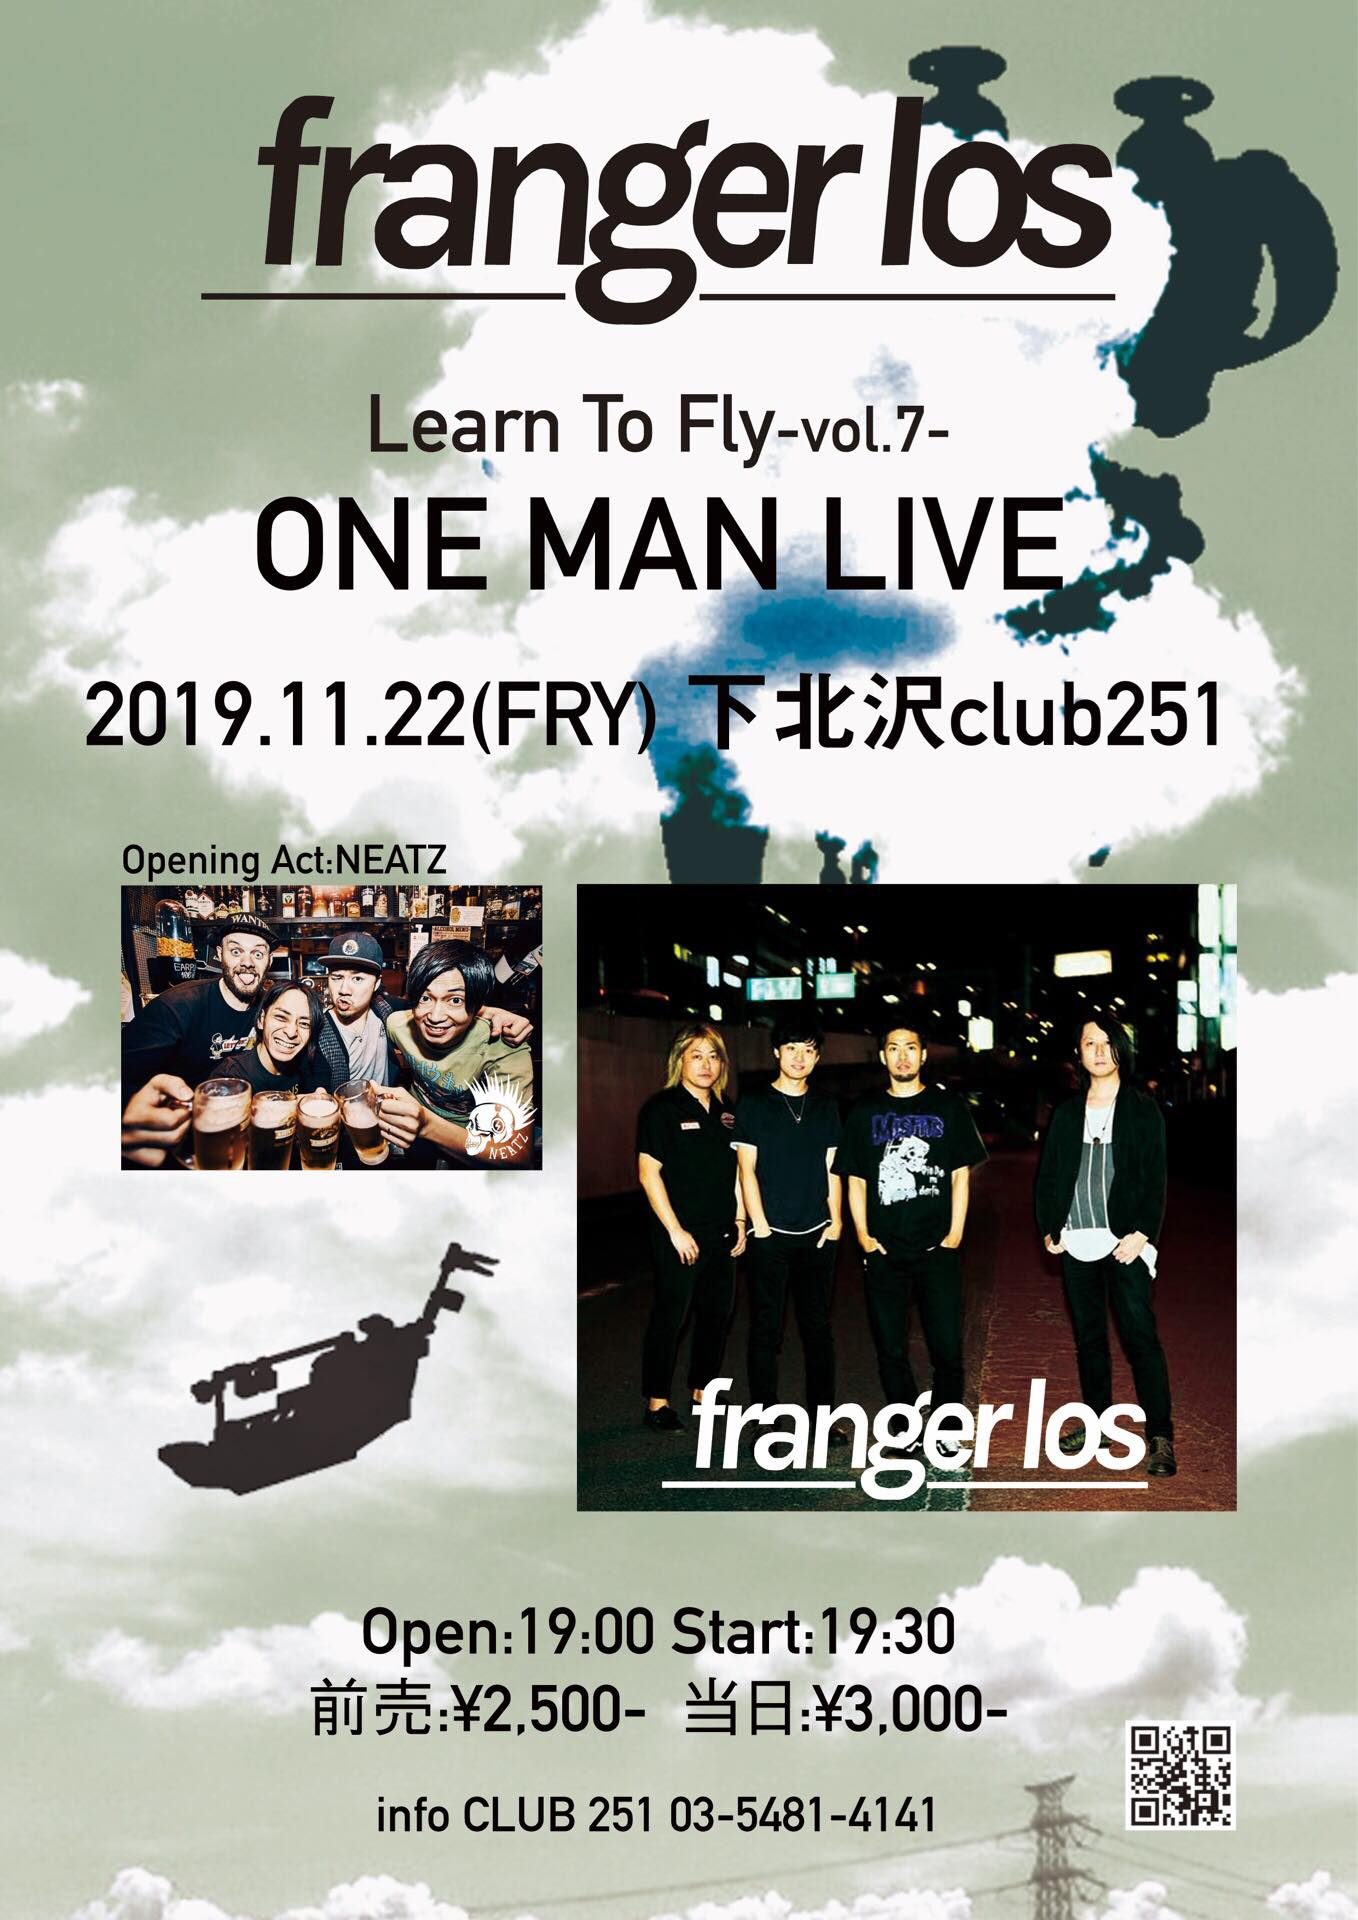 franger los ONE MAN LIVE Learn To Fly -vol.7-